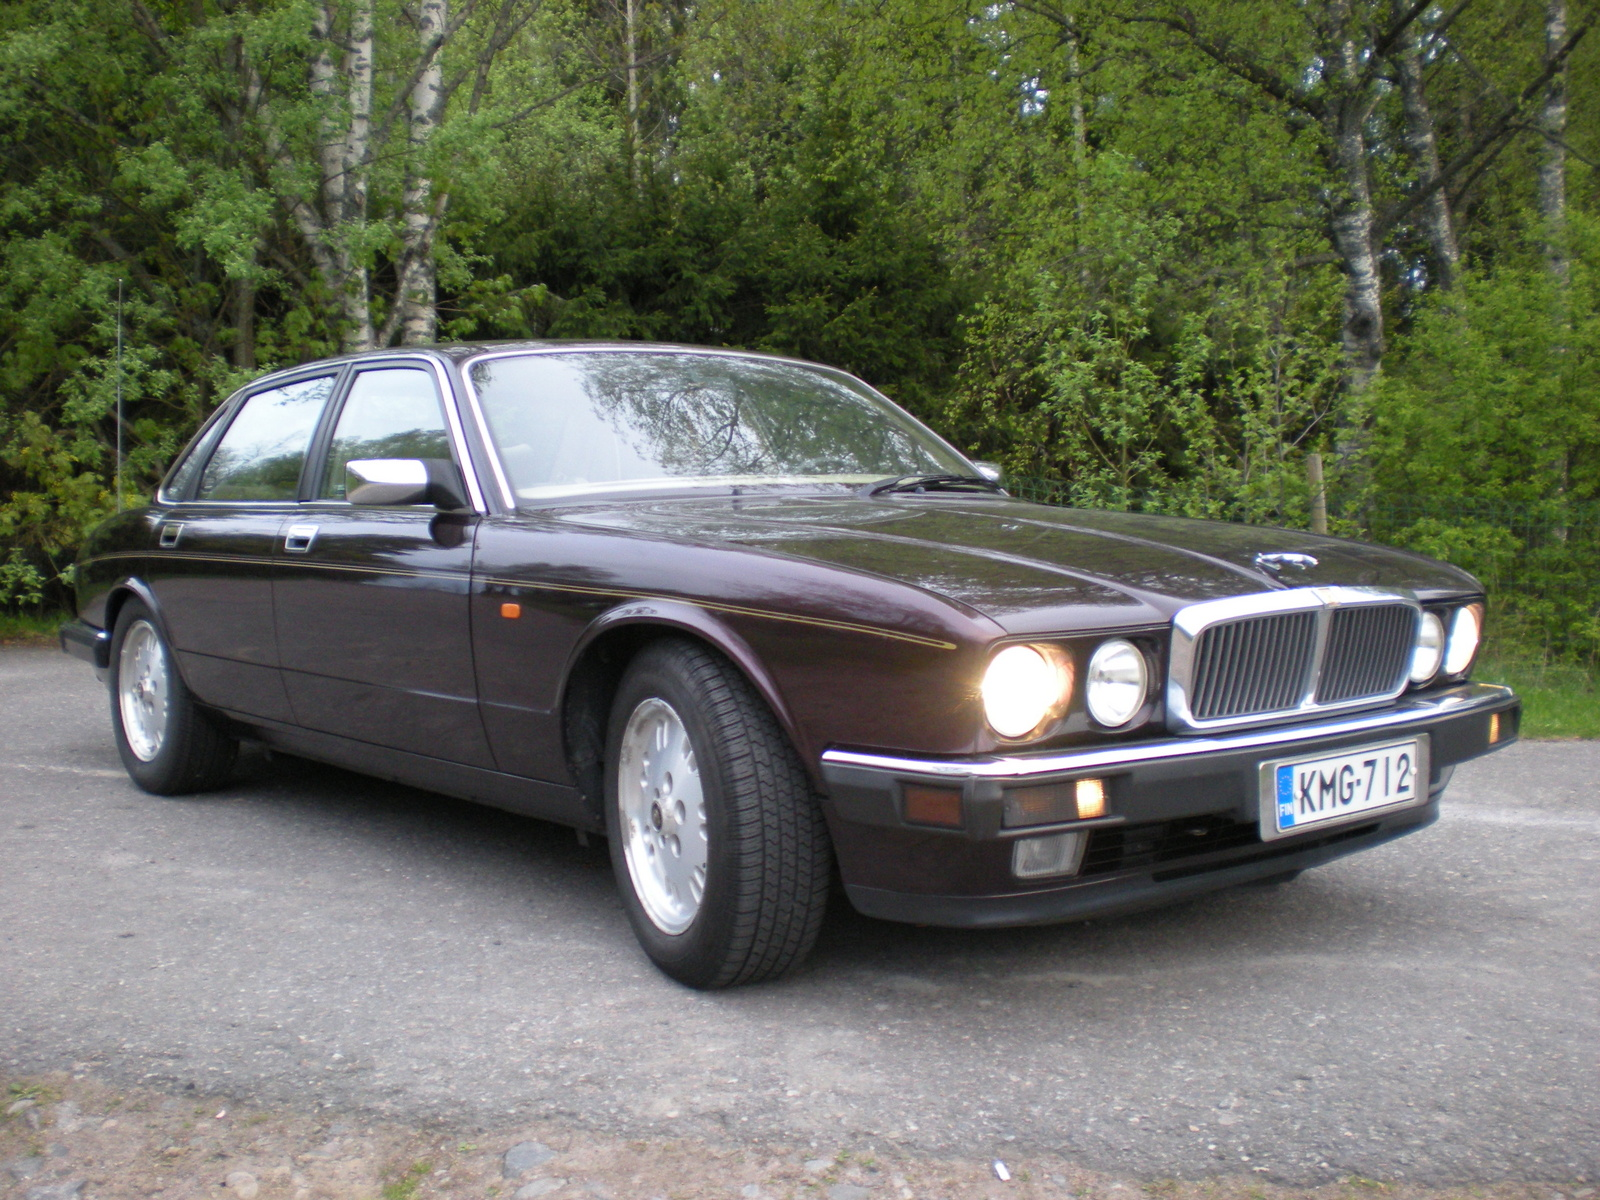 1994 Jaguar Xj-series #21